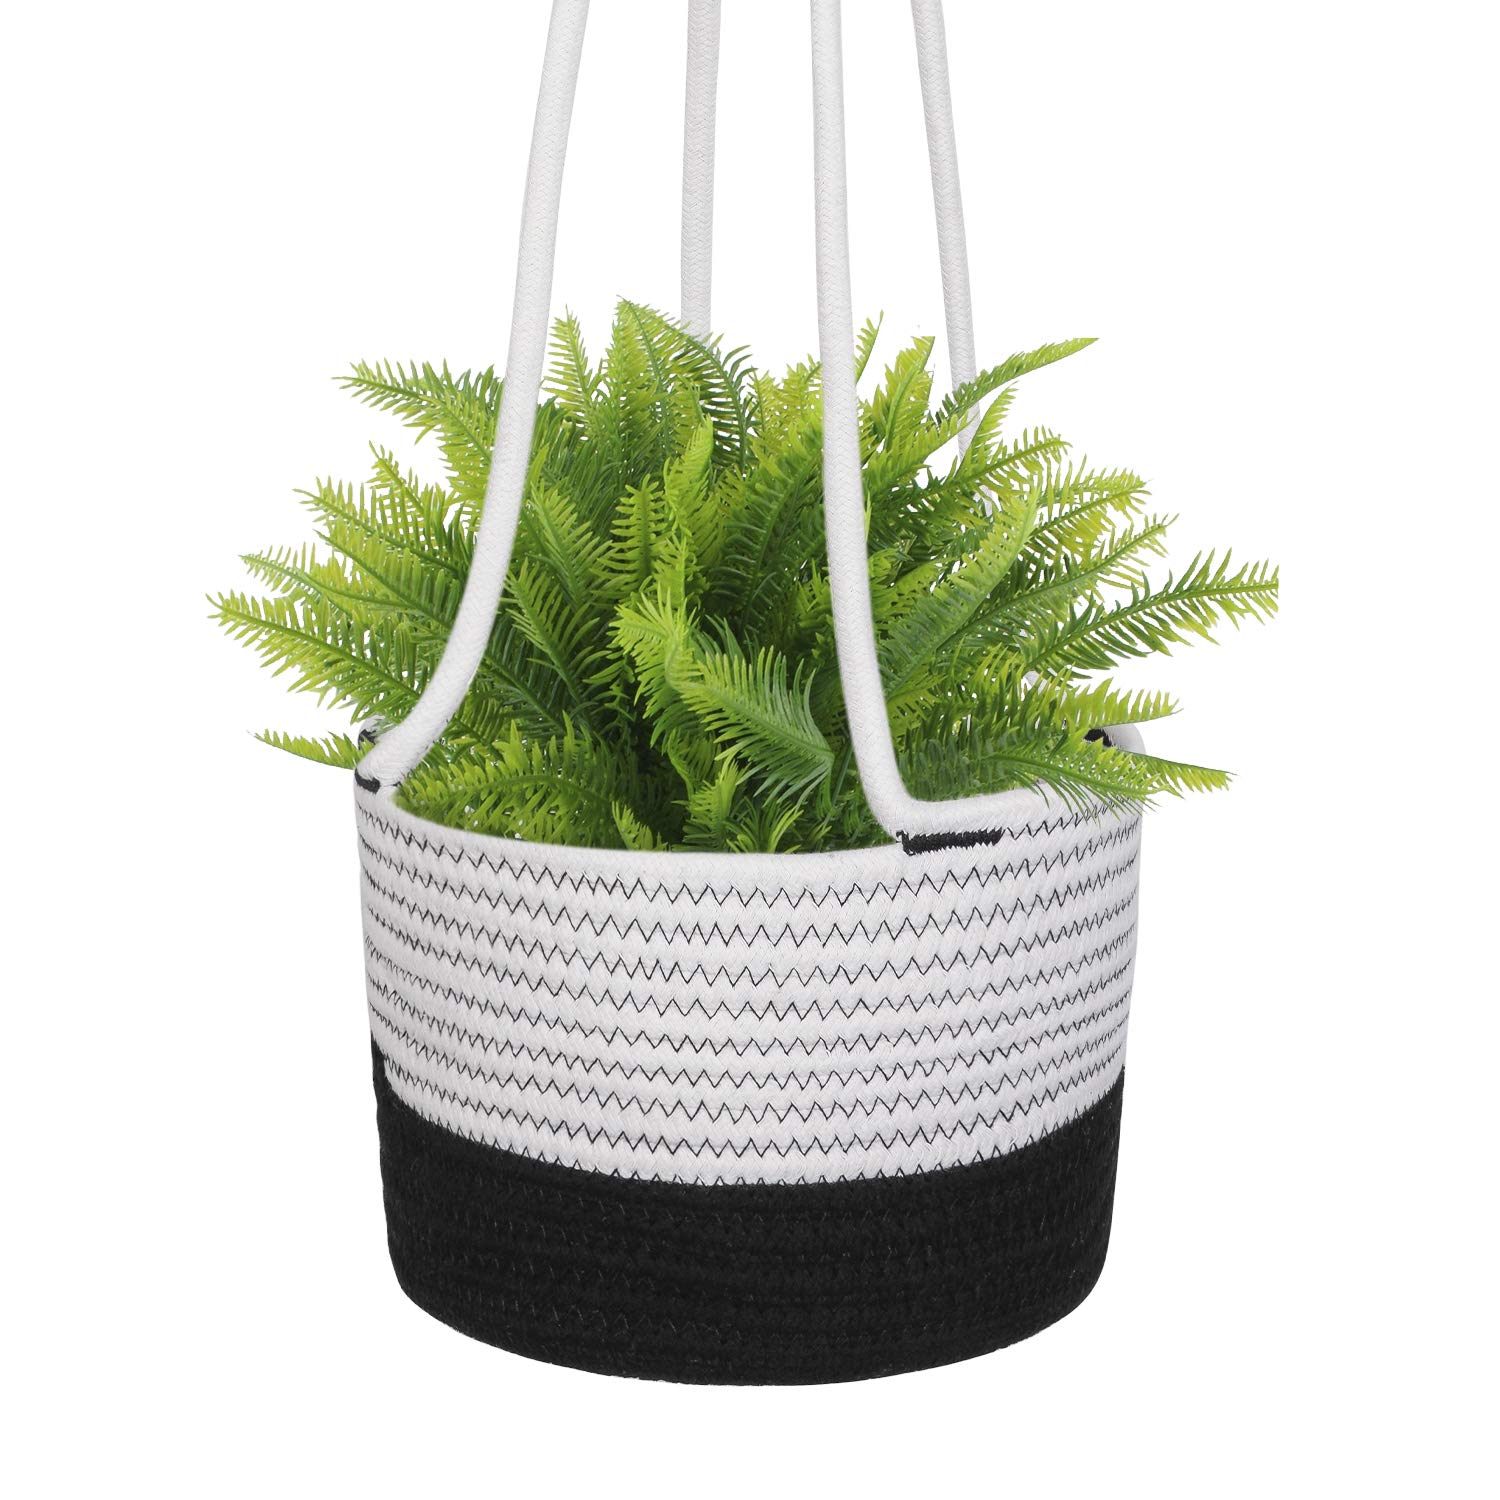 Cotton Rope Wall Hanging Planter Woven Plant Basket Indoor Up to 8 Pot Macrame Plant Hangers Modern Storage Organizer Small Home D cor